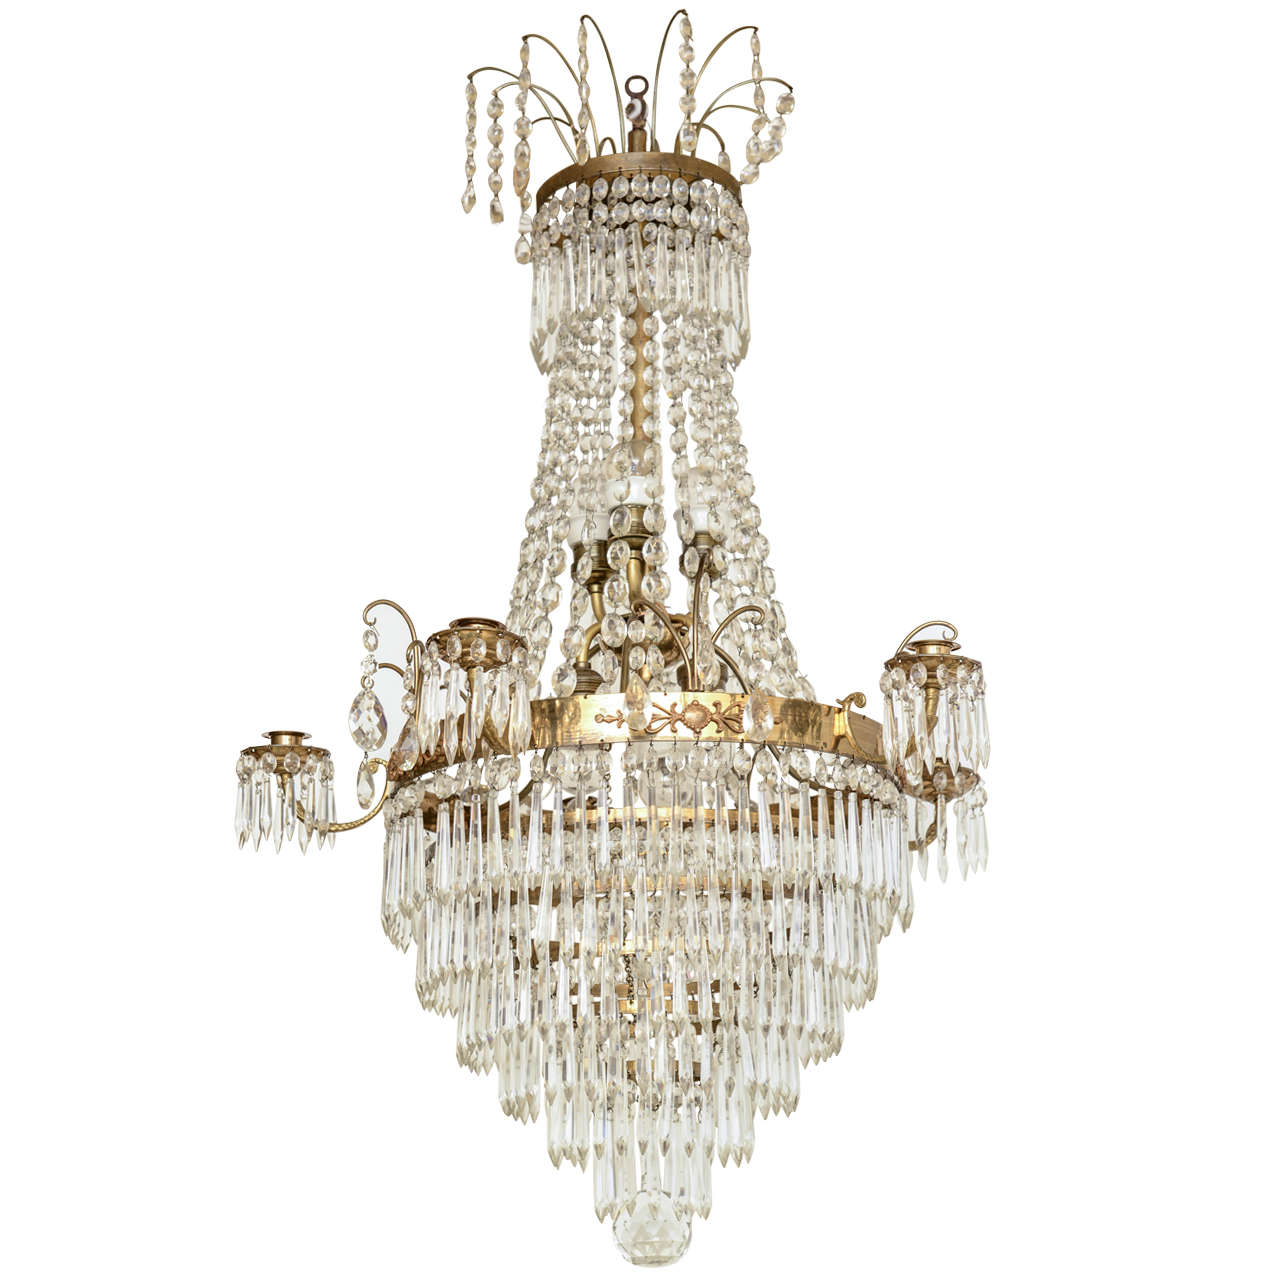 Antique swedish crystal chandelier mid 19th century for sale at 1stdibs antique swedish crystal chandelier mid 19th century for sale aloadofball Image collections